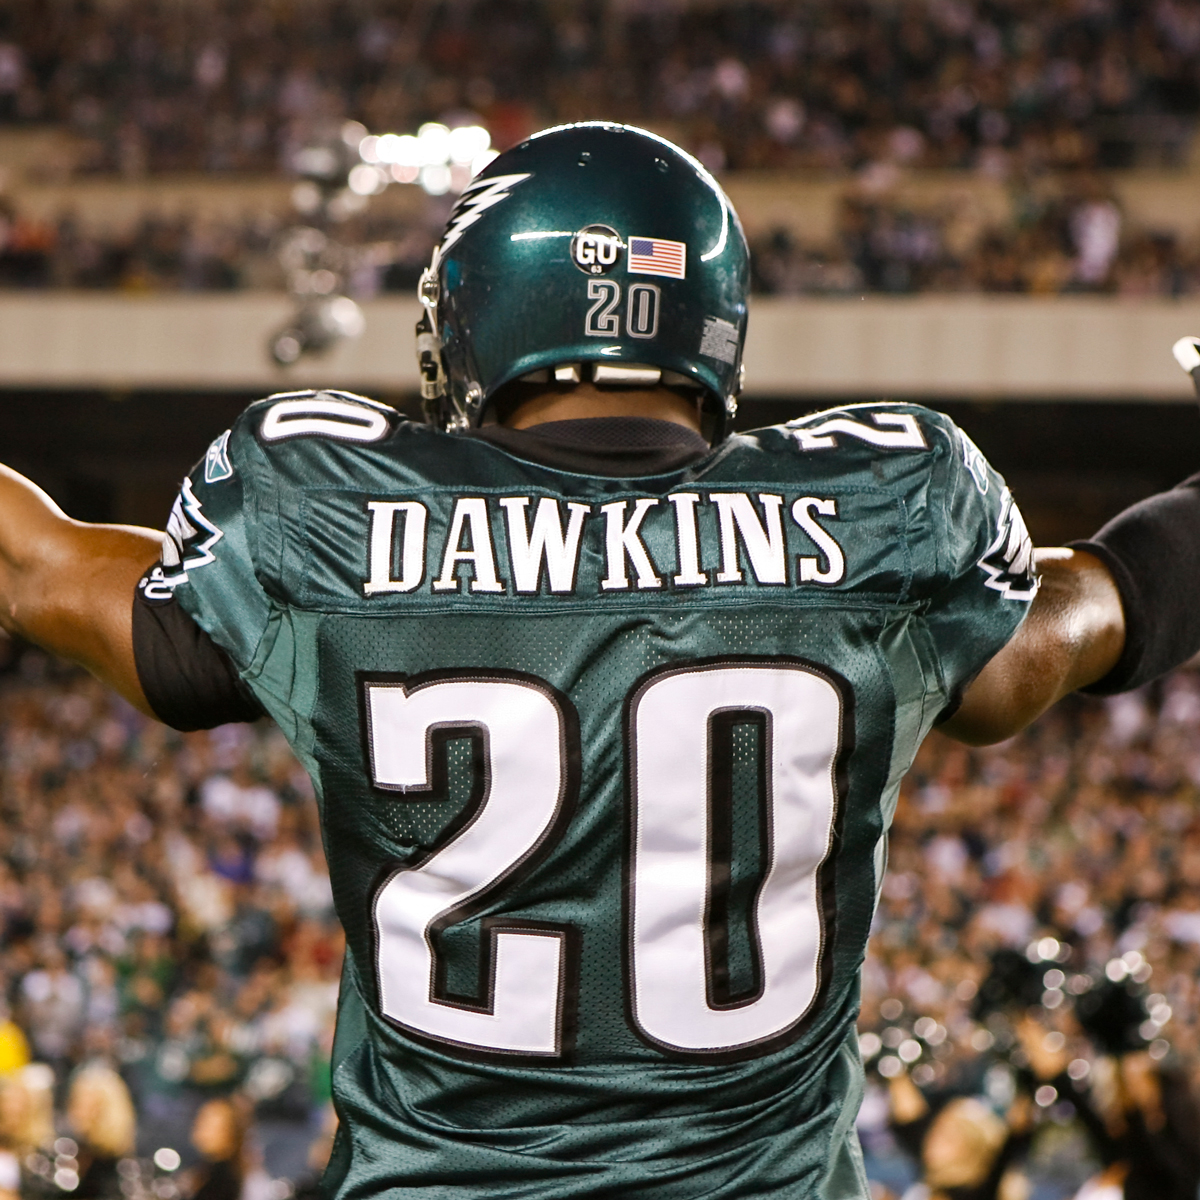 Join Brian Dawkins, Harold Carmichael, and more for the inaugural Eagles Fan Cruise, setting sail March 2021!  The Cruise now offers an exclusive Hall of Fame Experience package for fans who book now through February 29, 2020. Go to  and book now!